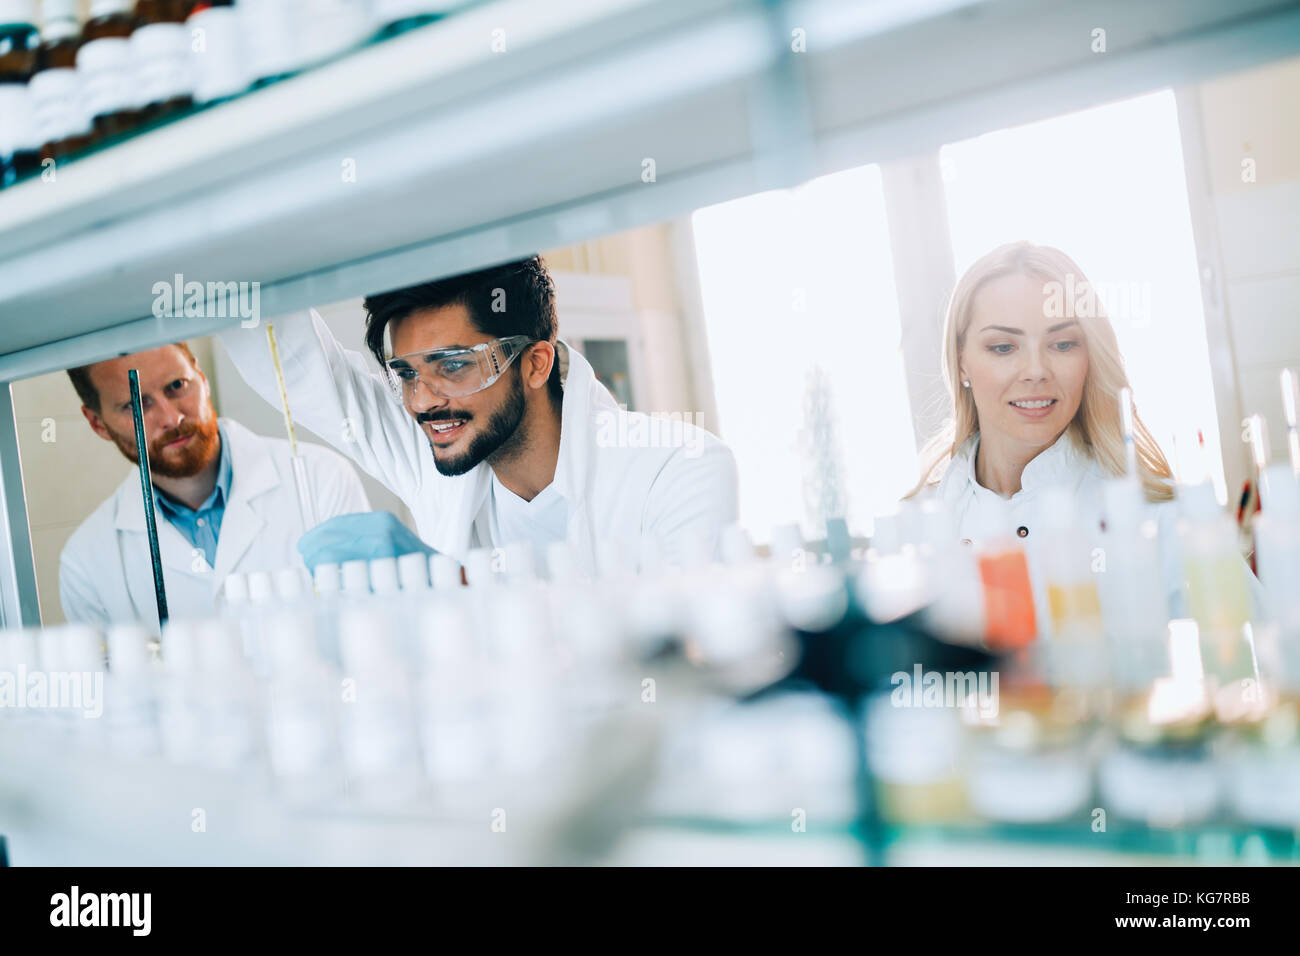 Group of chemistry students working in laboratory - Stock Image